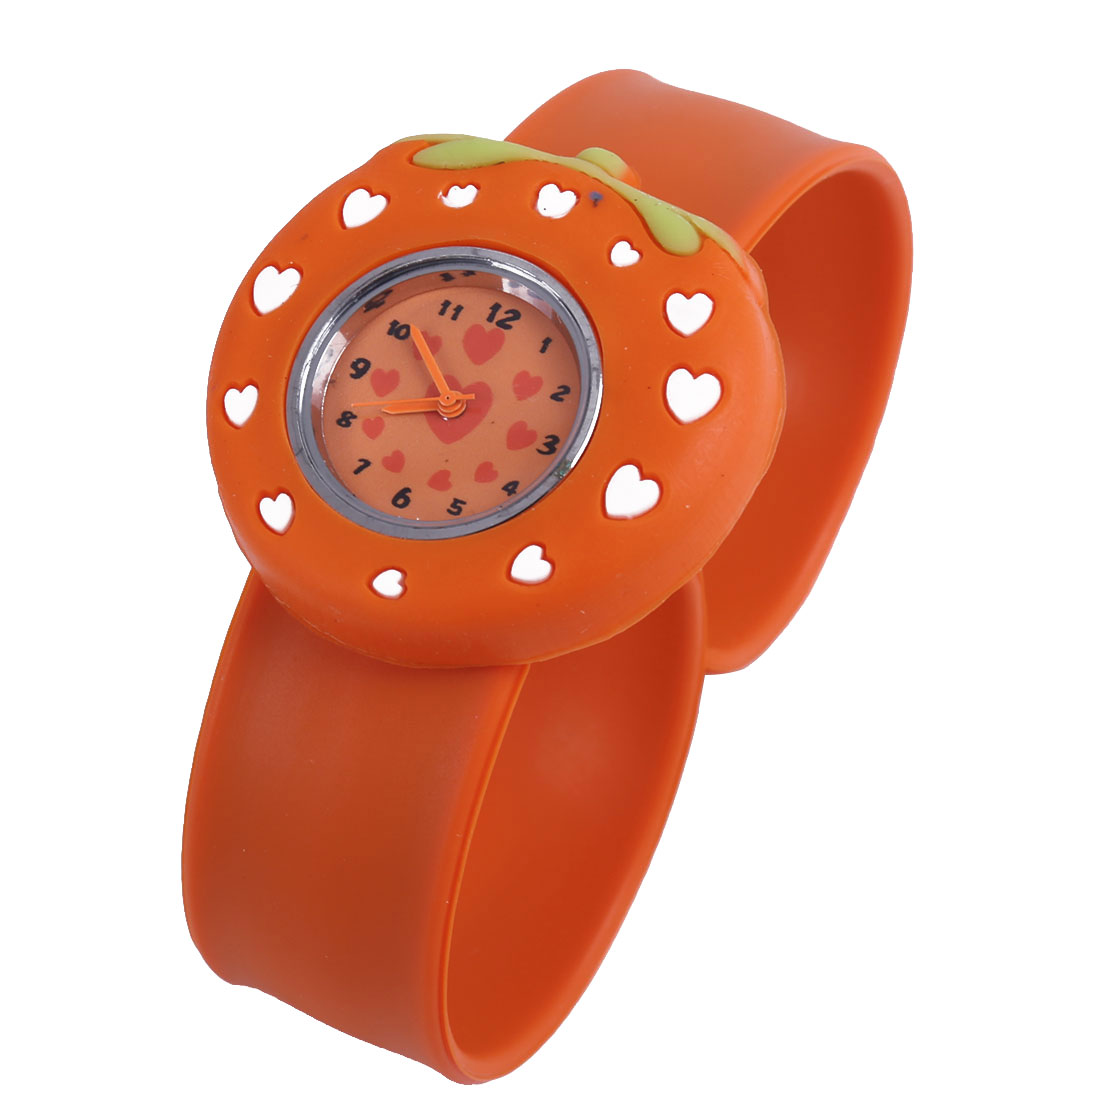 Fashion NEWS Slap Cuff Strawberry Watch for Kids Orange